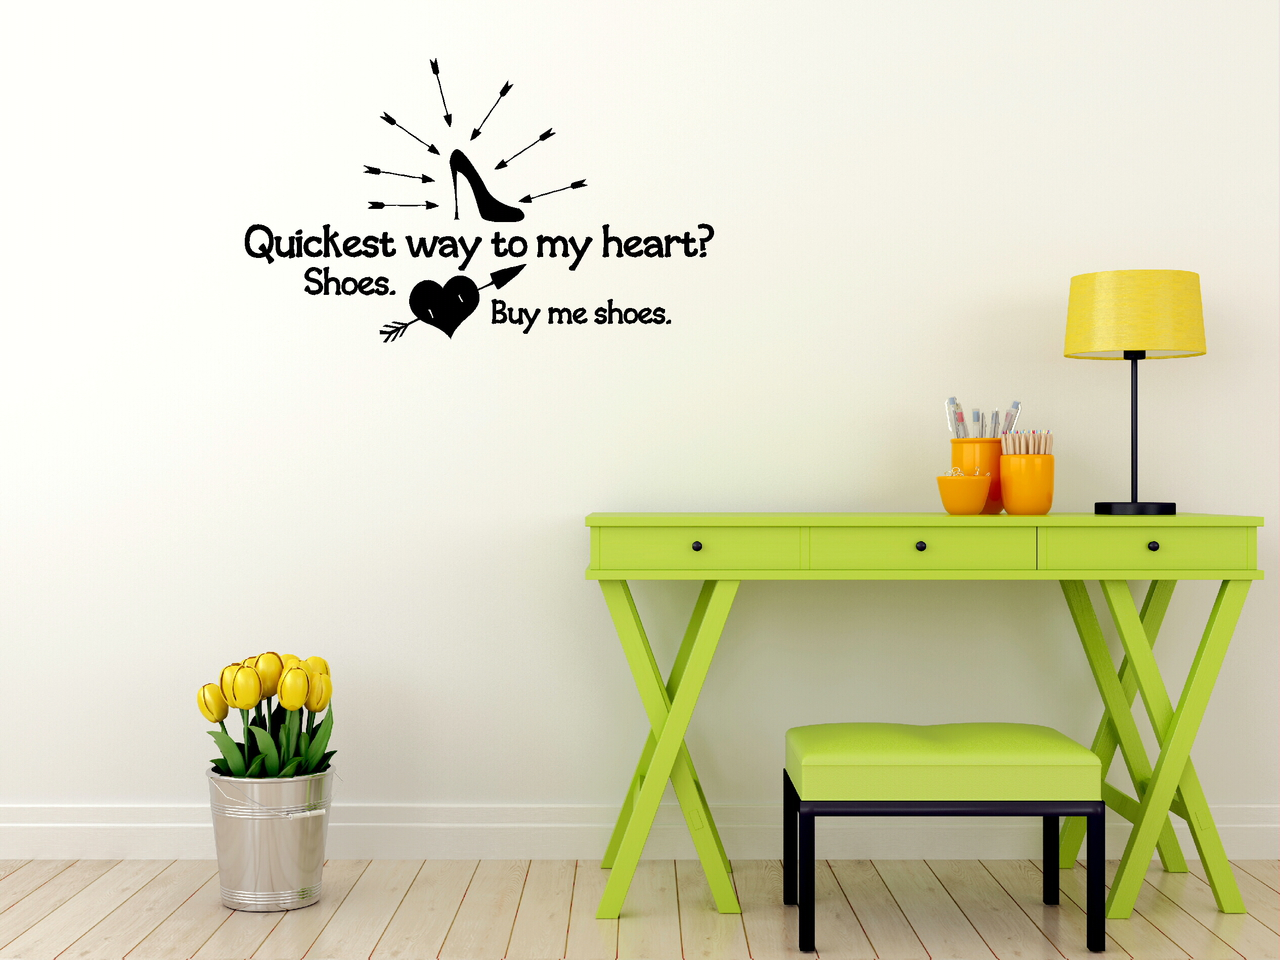 Buy me shoes funny wall decal saying for bedroom home decor black